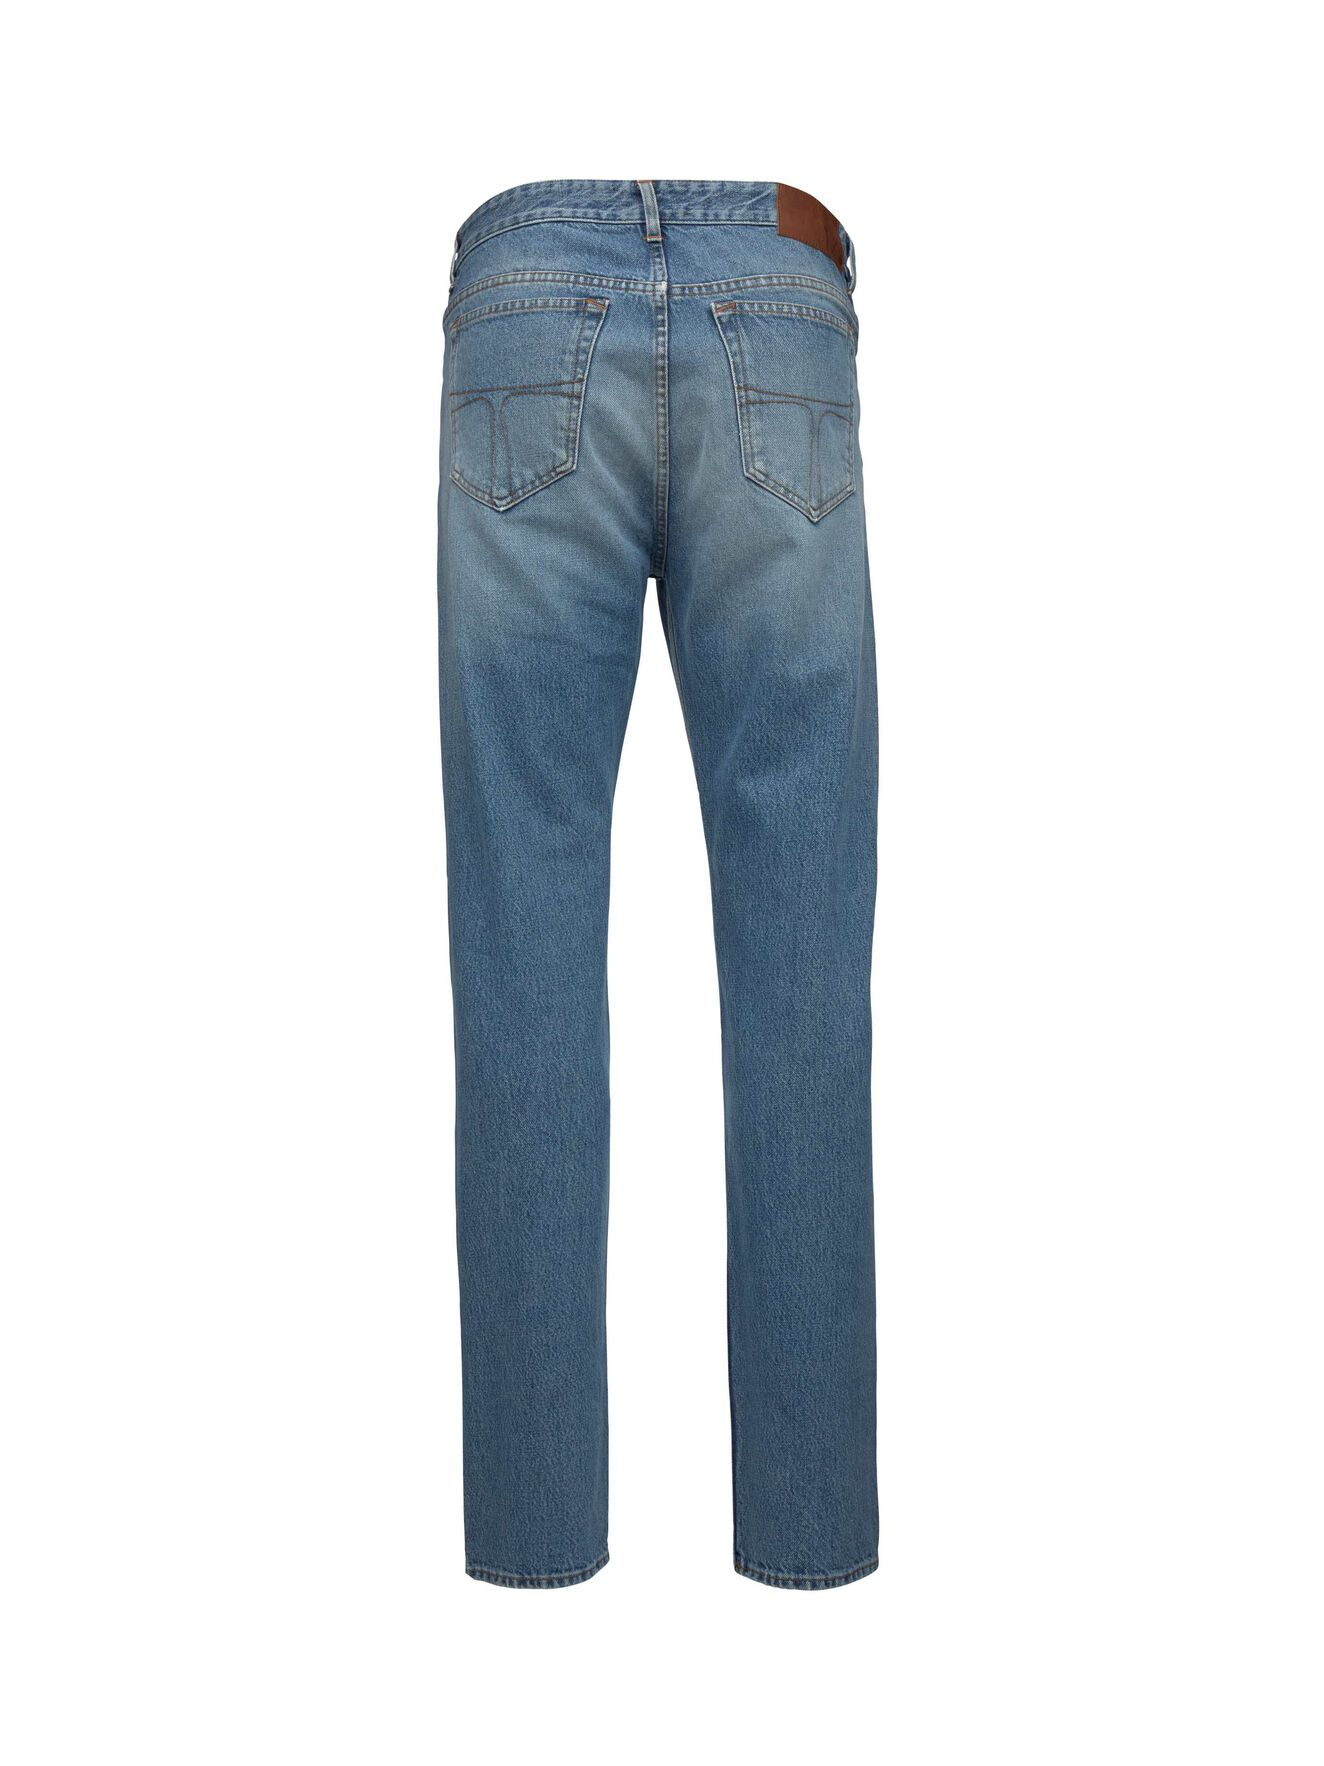 Norton Jeans in Light blue from Tiger of Sweden